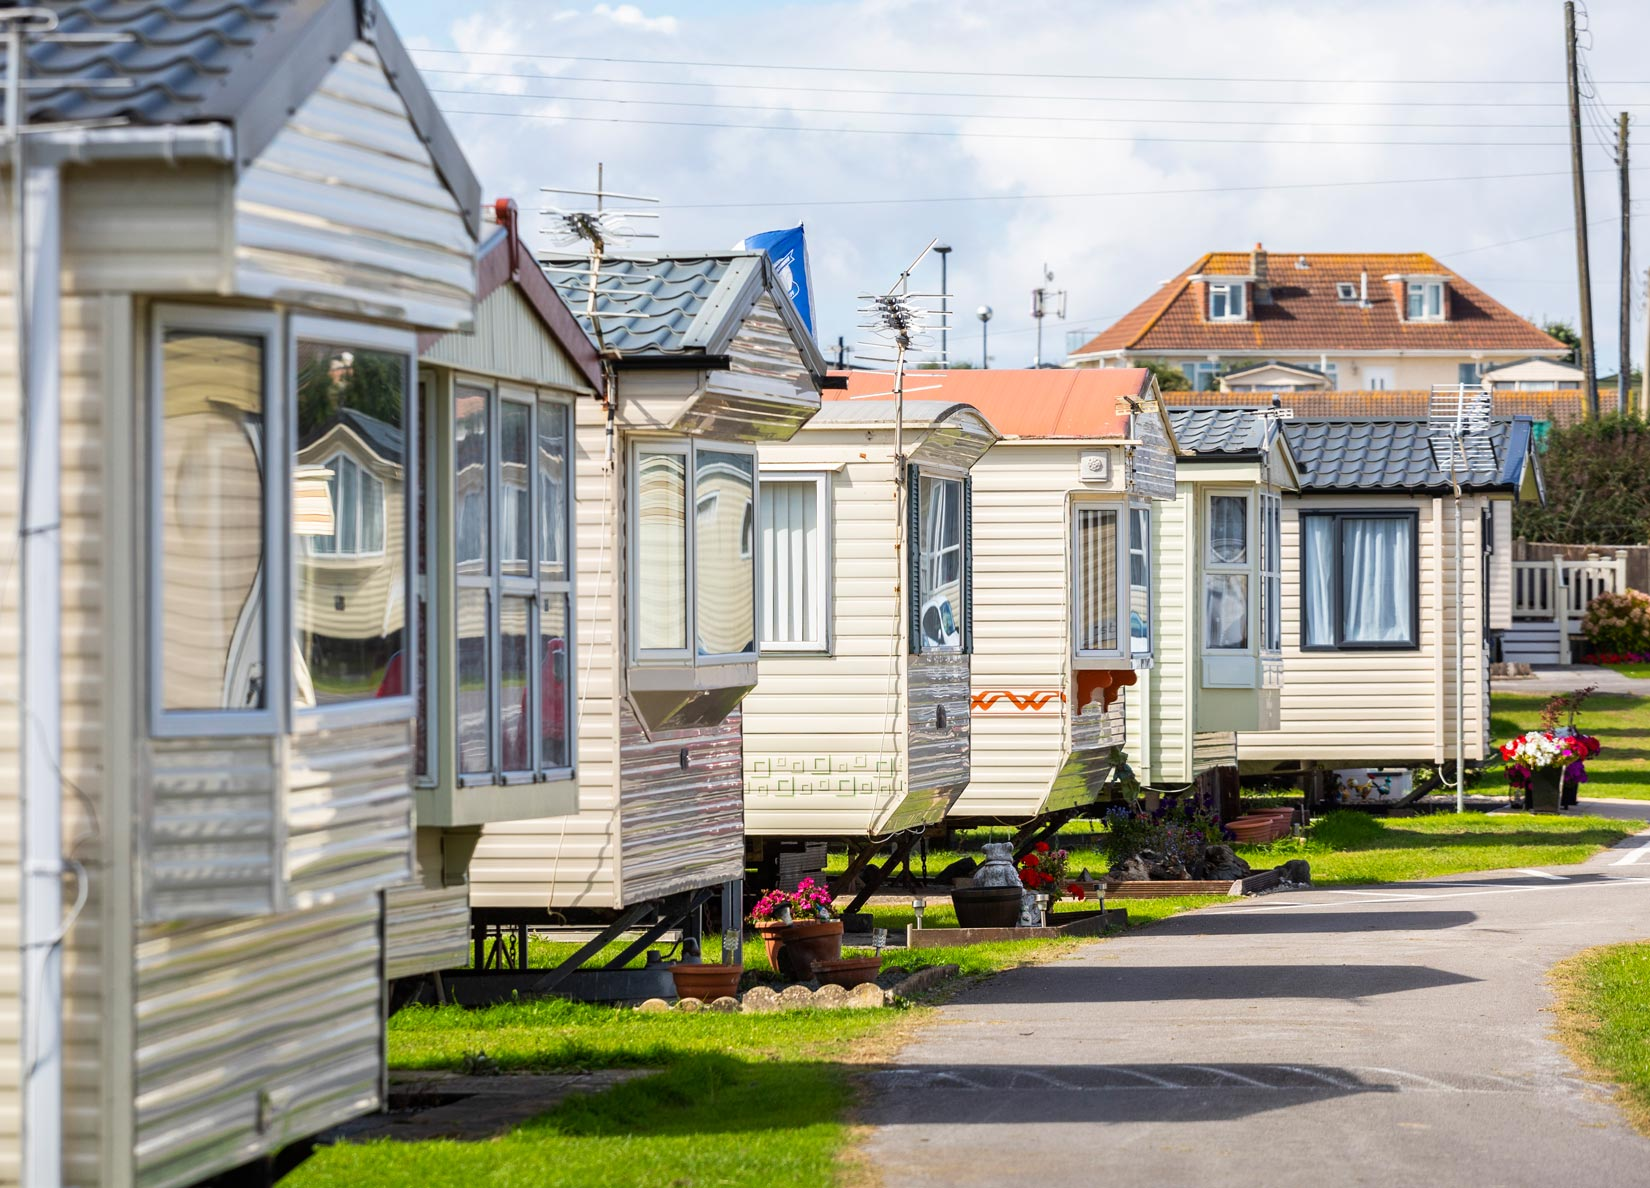 Diamond-Merrybee-Static-caravan-holiday-homes-brean